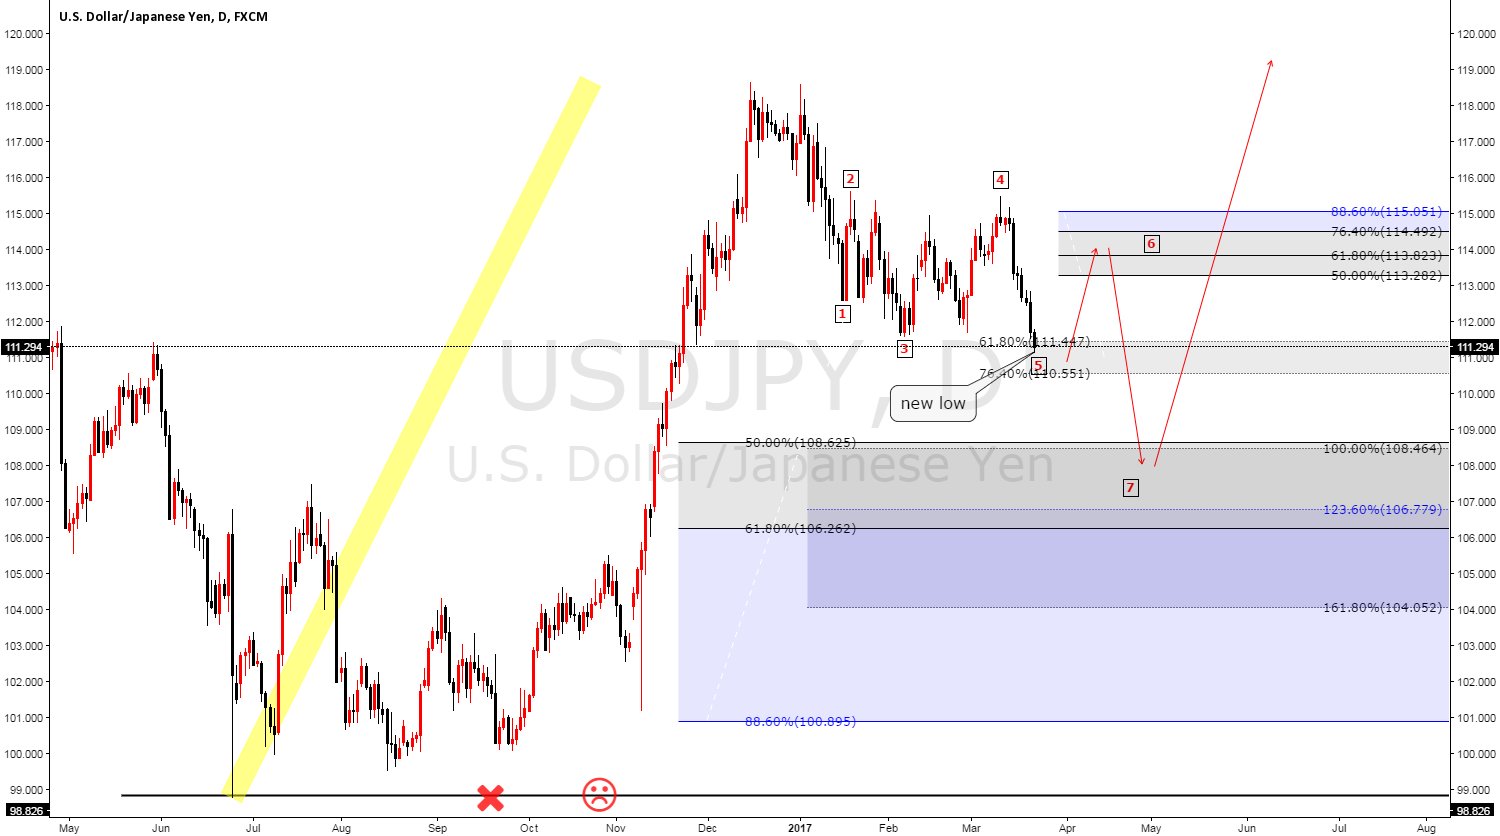 USDJPY Elliot wave analysis